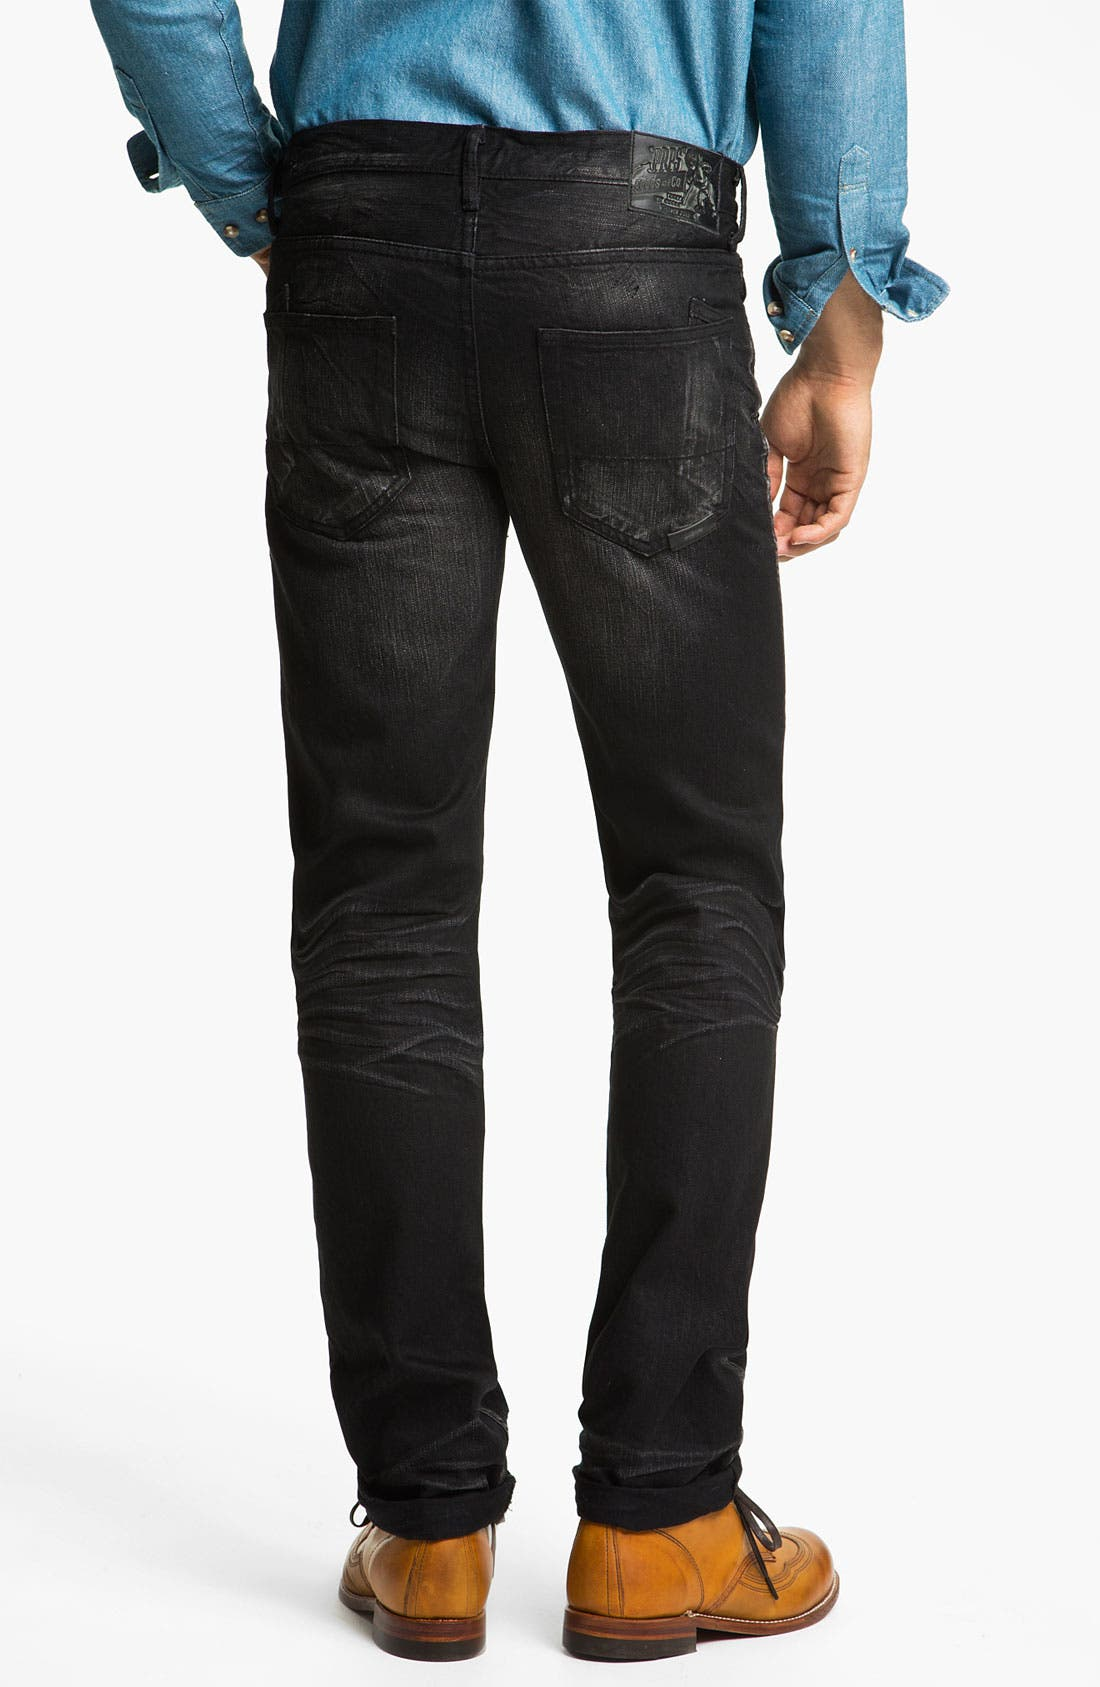 Main Image - PRPS 'Rambler' Slim Fit Jeans (Junko's Summit)